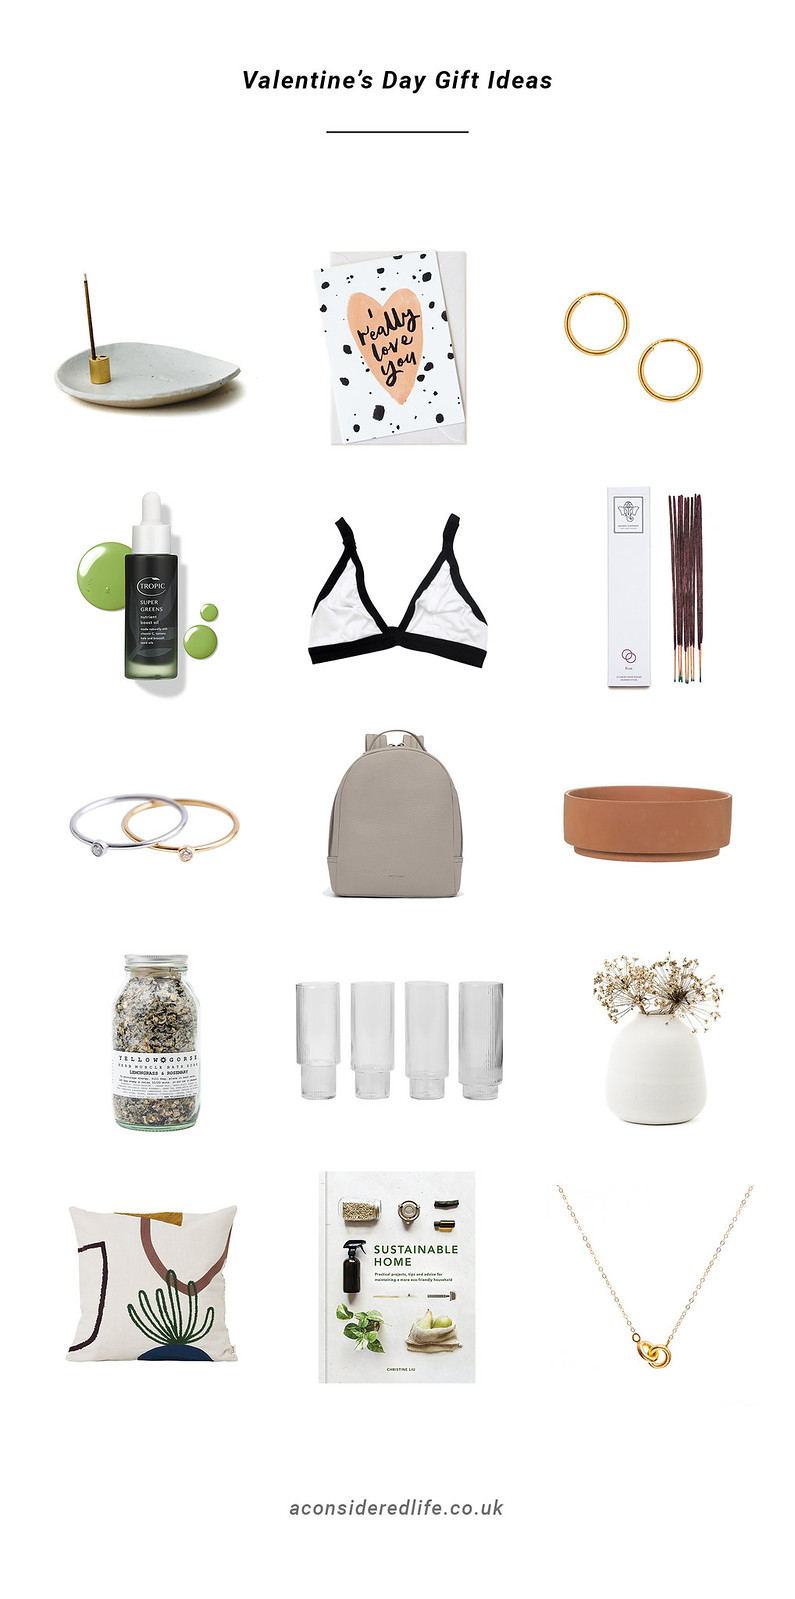 Sustainable and Ethical Valentine's Day Gift Ideas